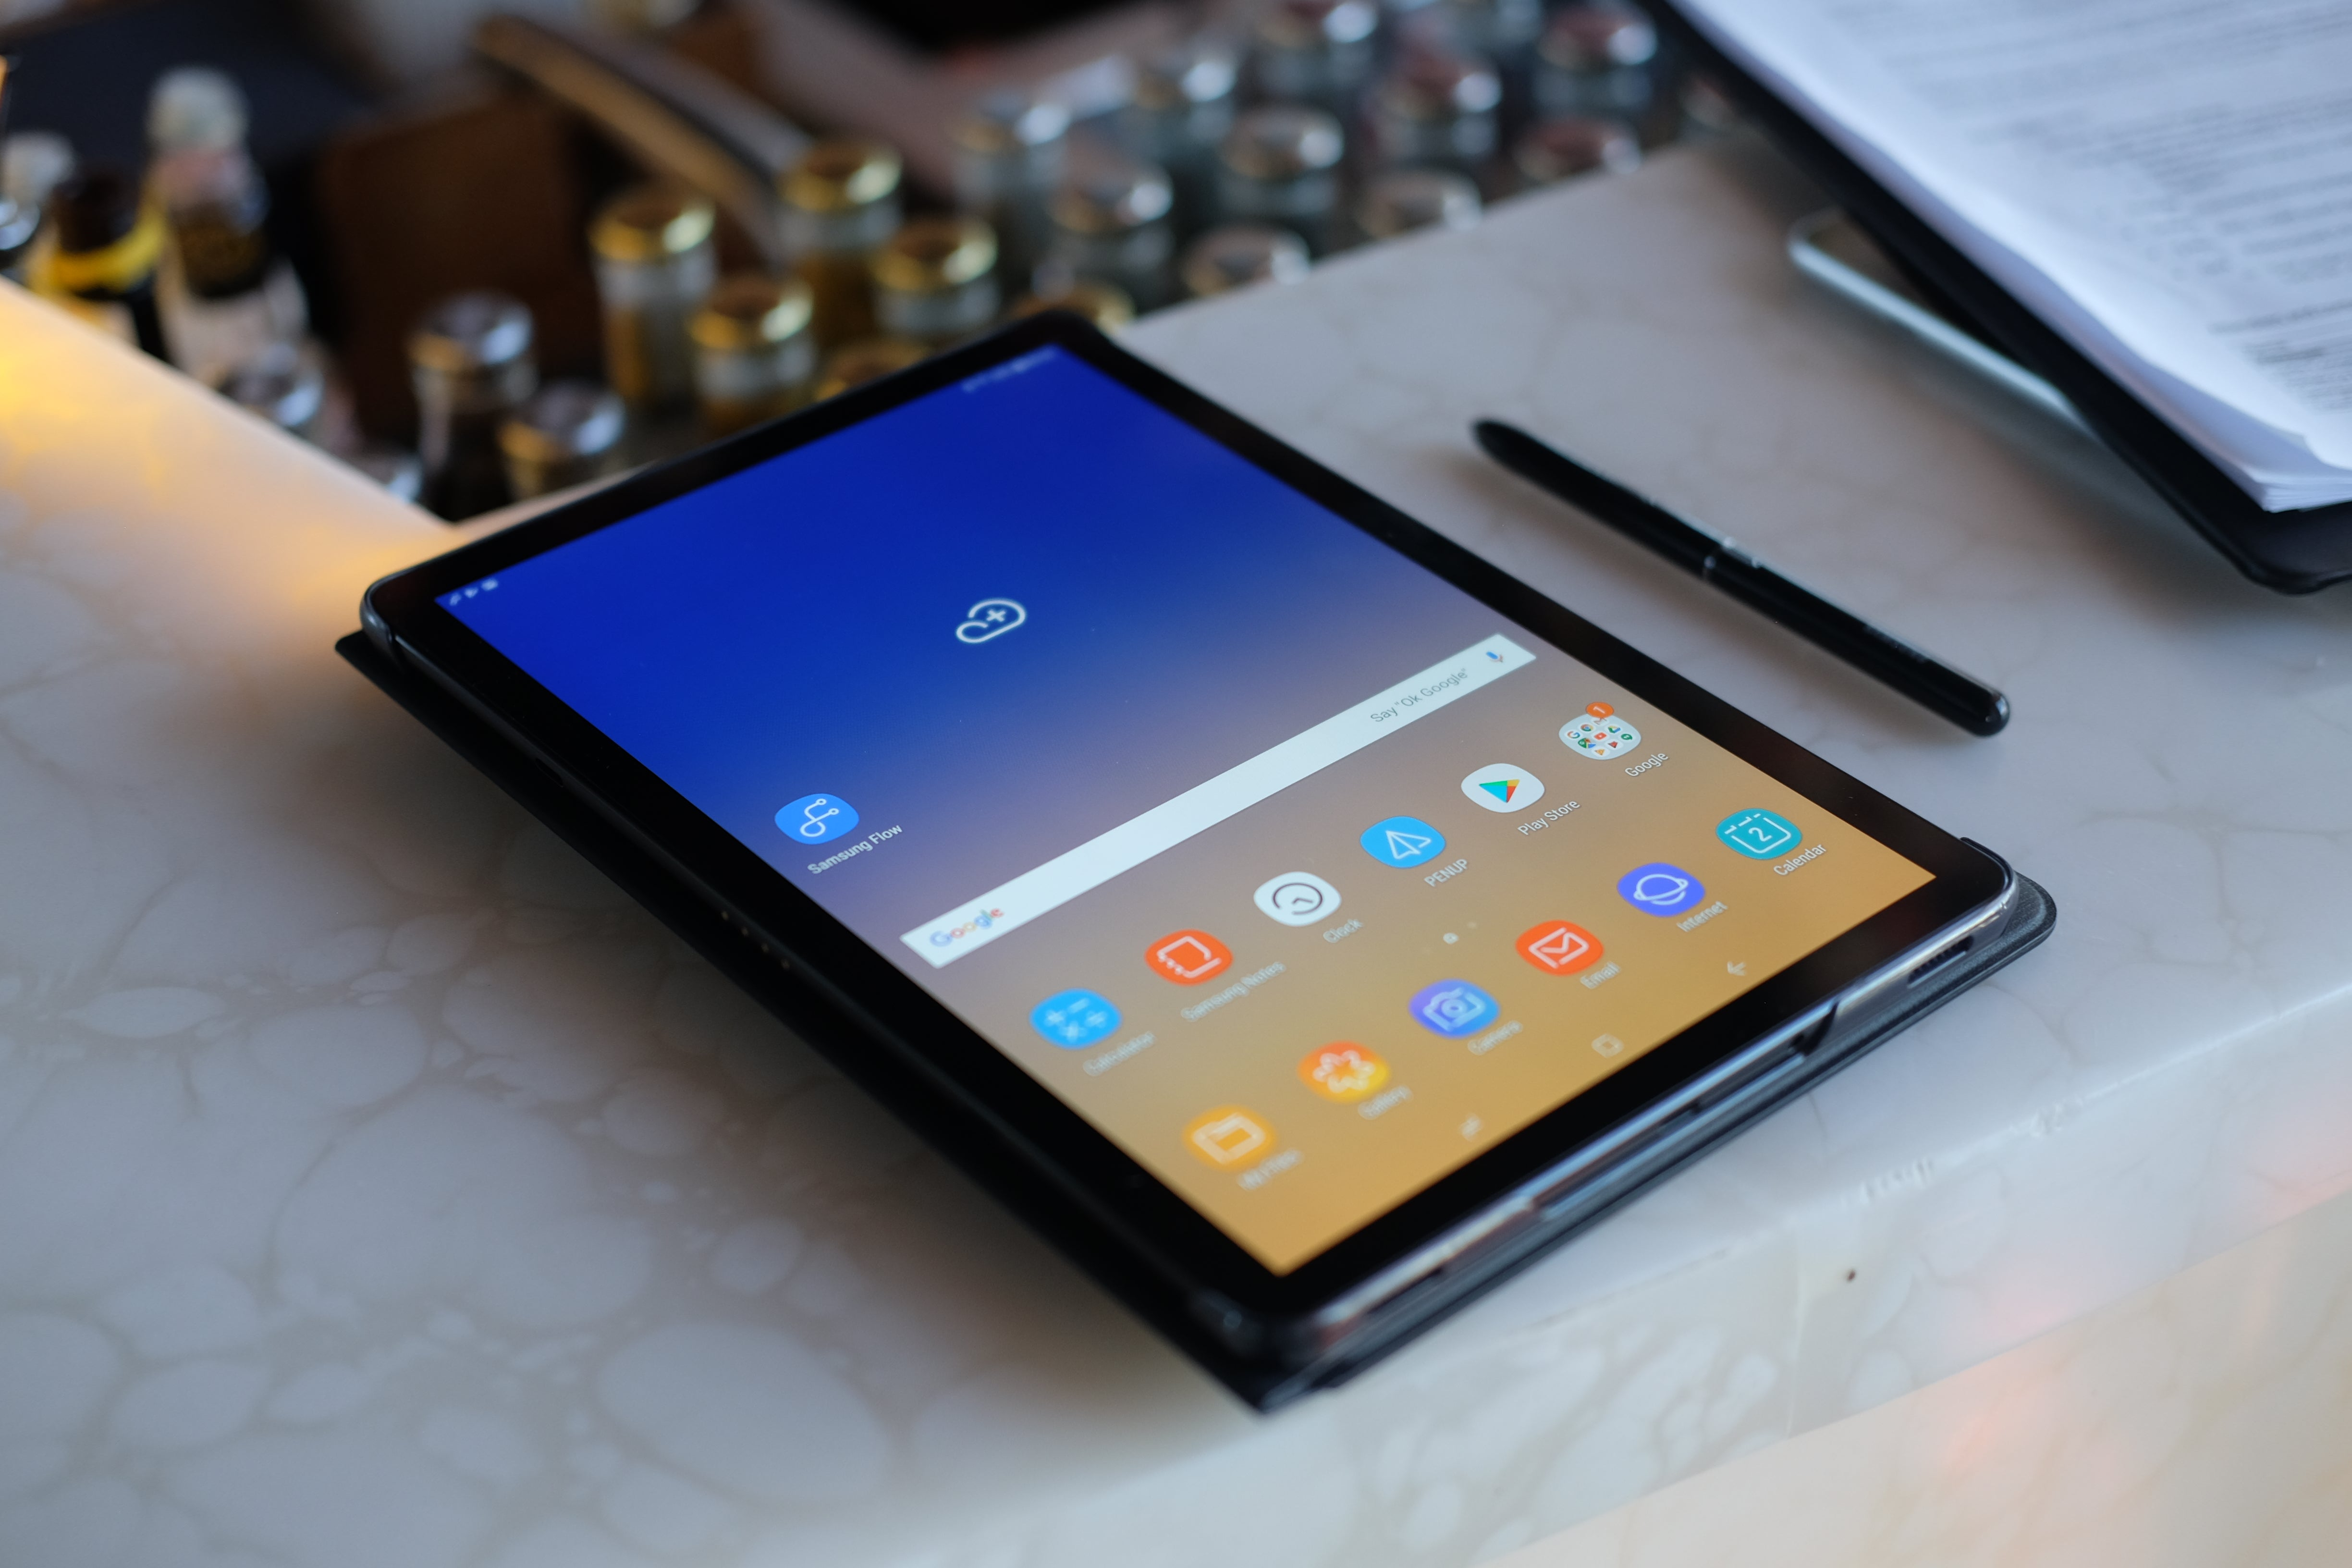 Best Android Tablet 2019: 5 top choices using Google's OS